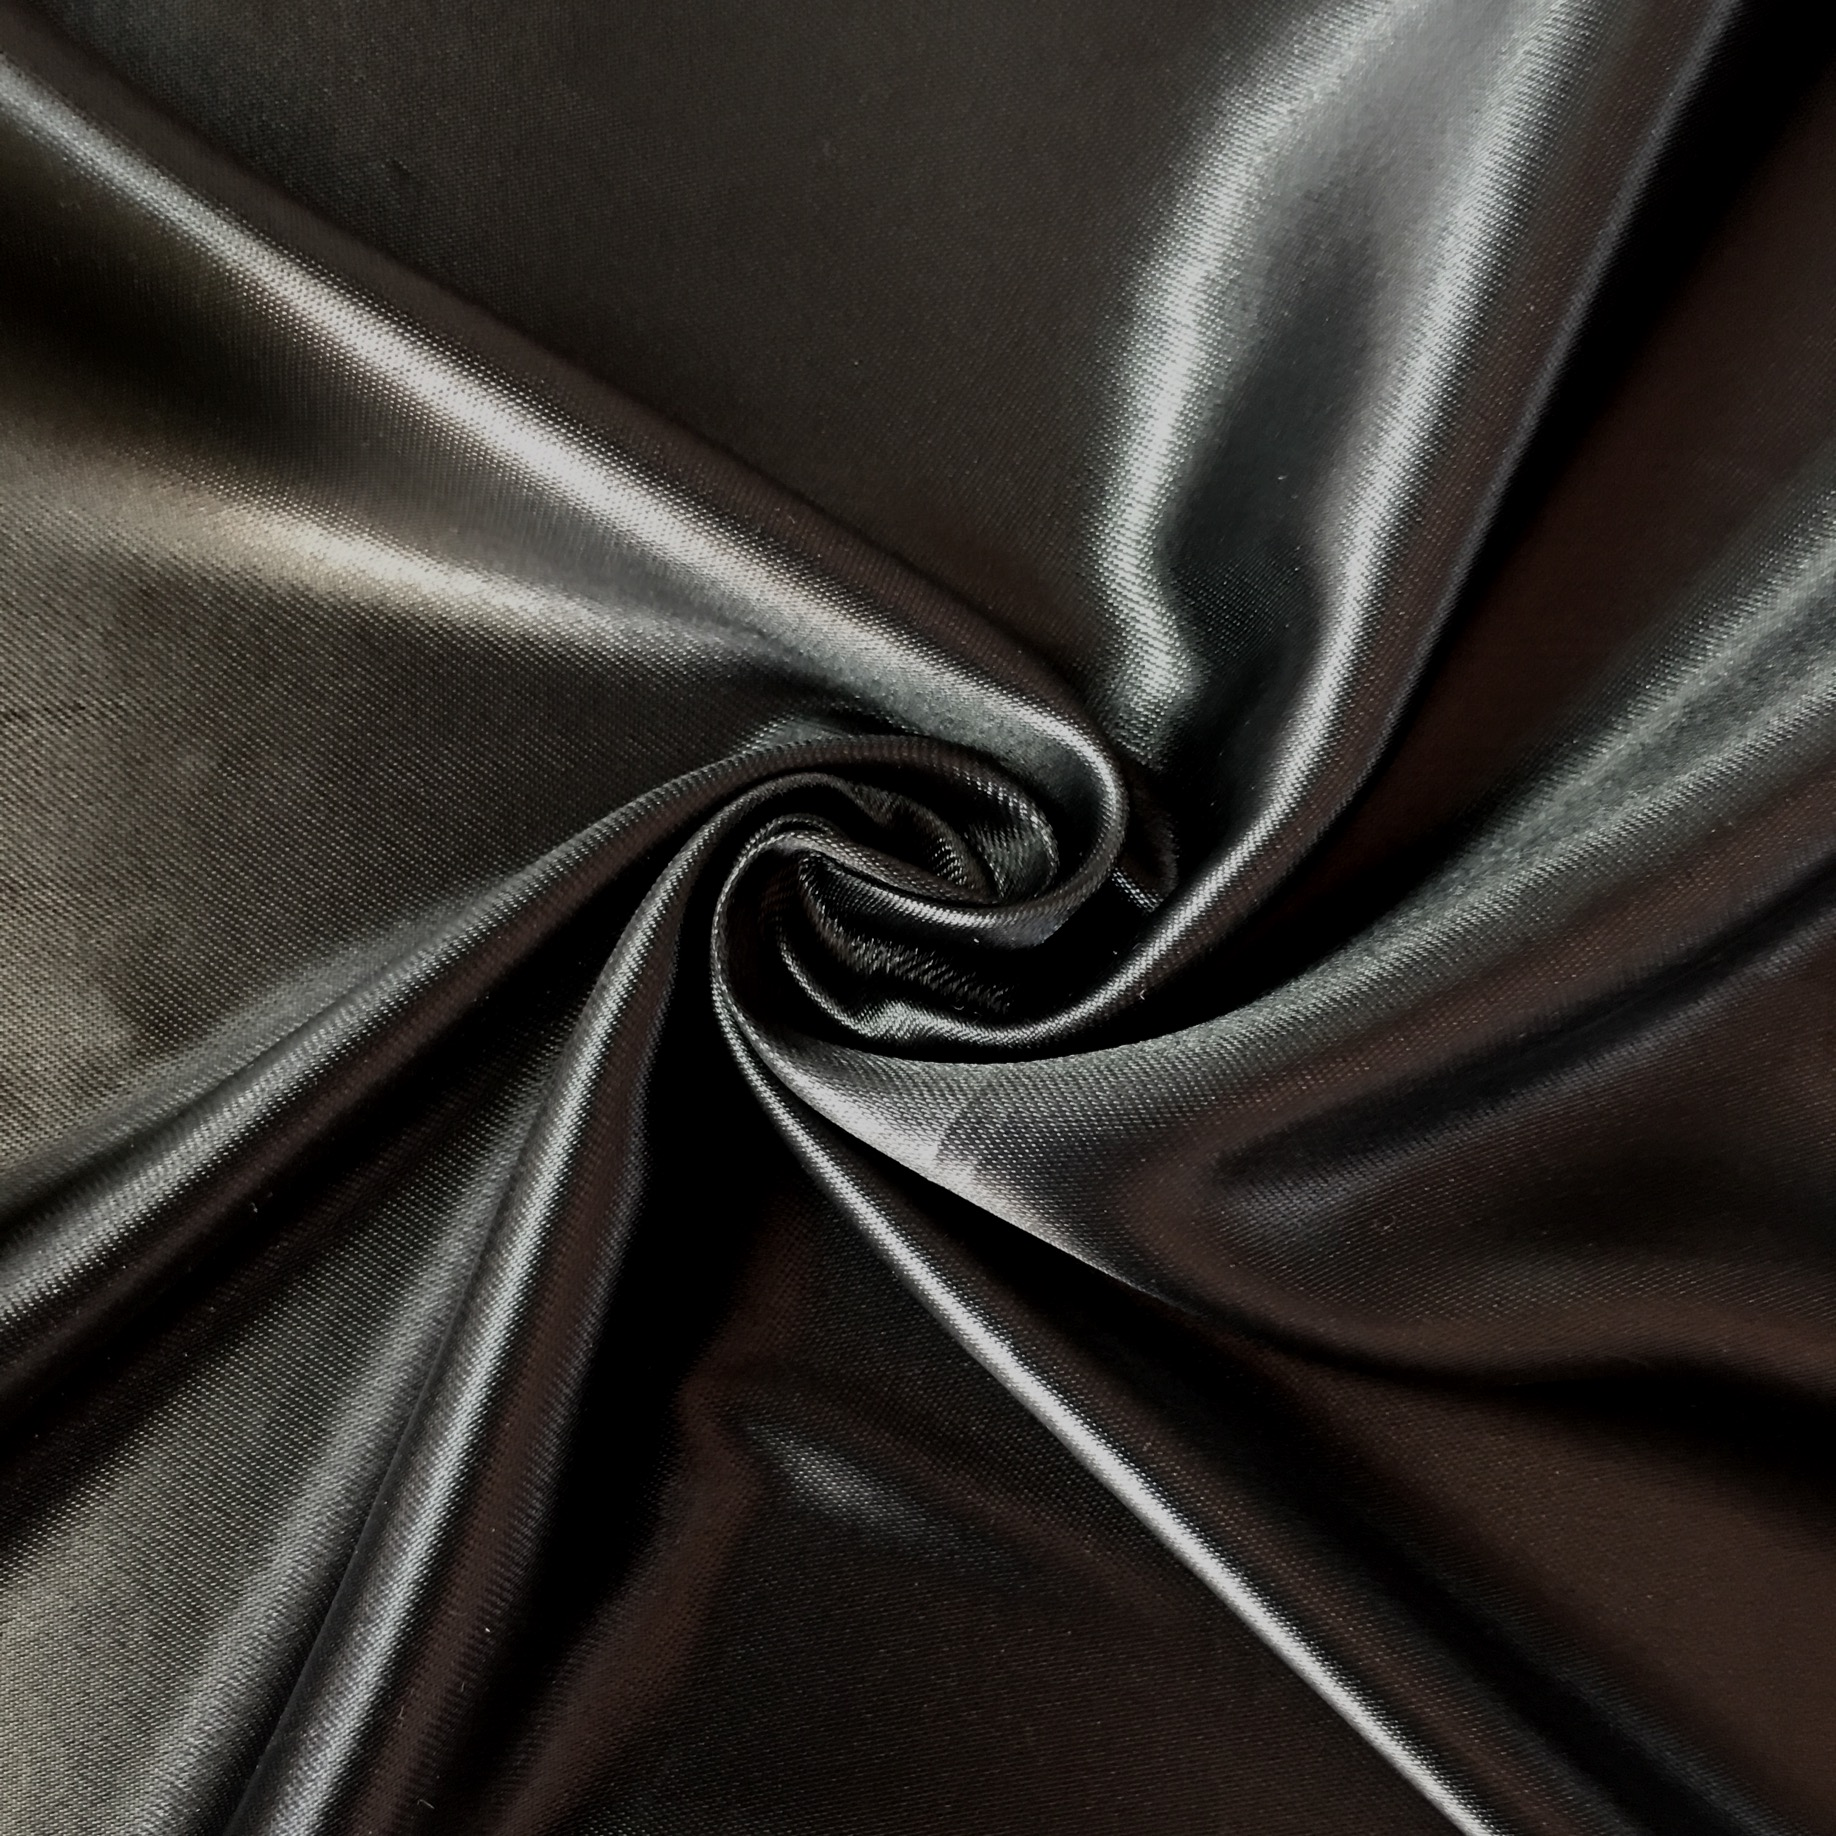 photographic background clothe black color Darkroom theater curtain Stage curtain Full black background cloth 3X5M  CD50photographic background clothe black color Darkroom theater curtain Stage curtain Full black background cloth 3X5M  CD50